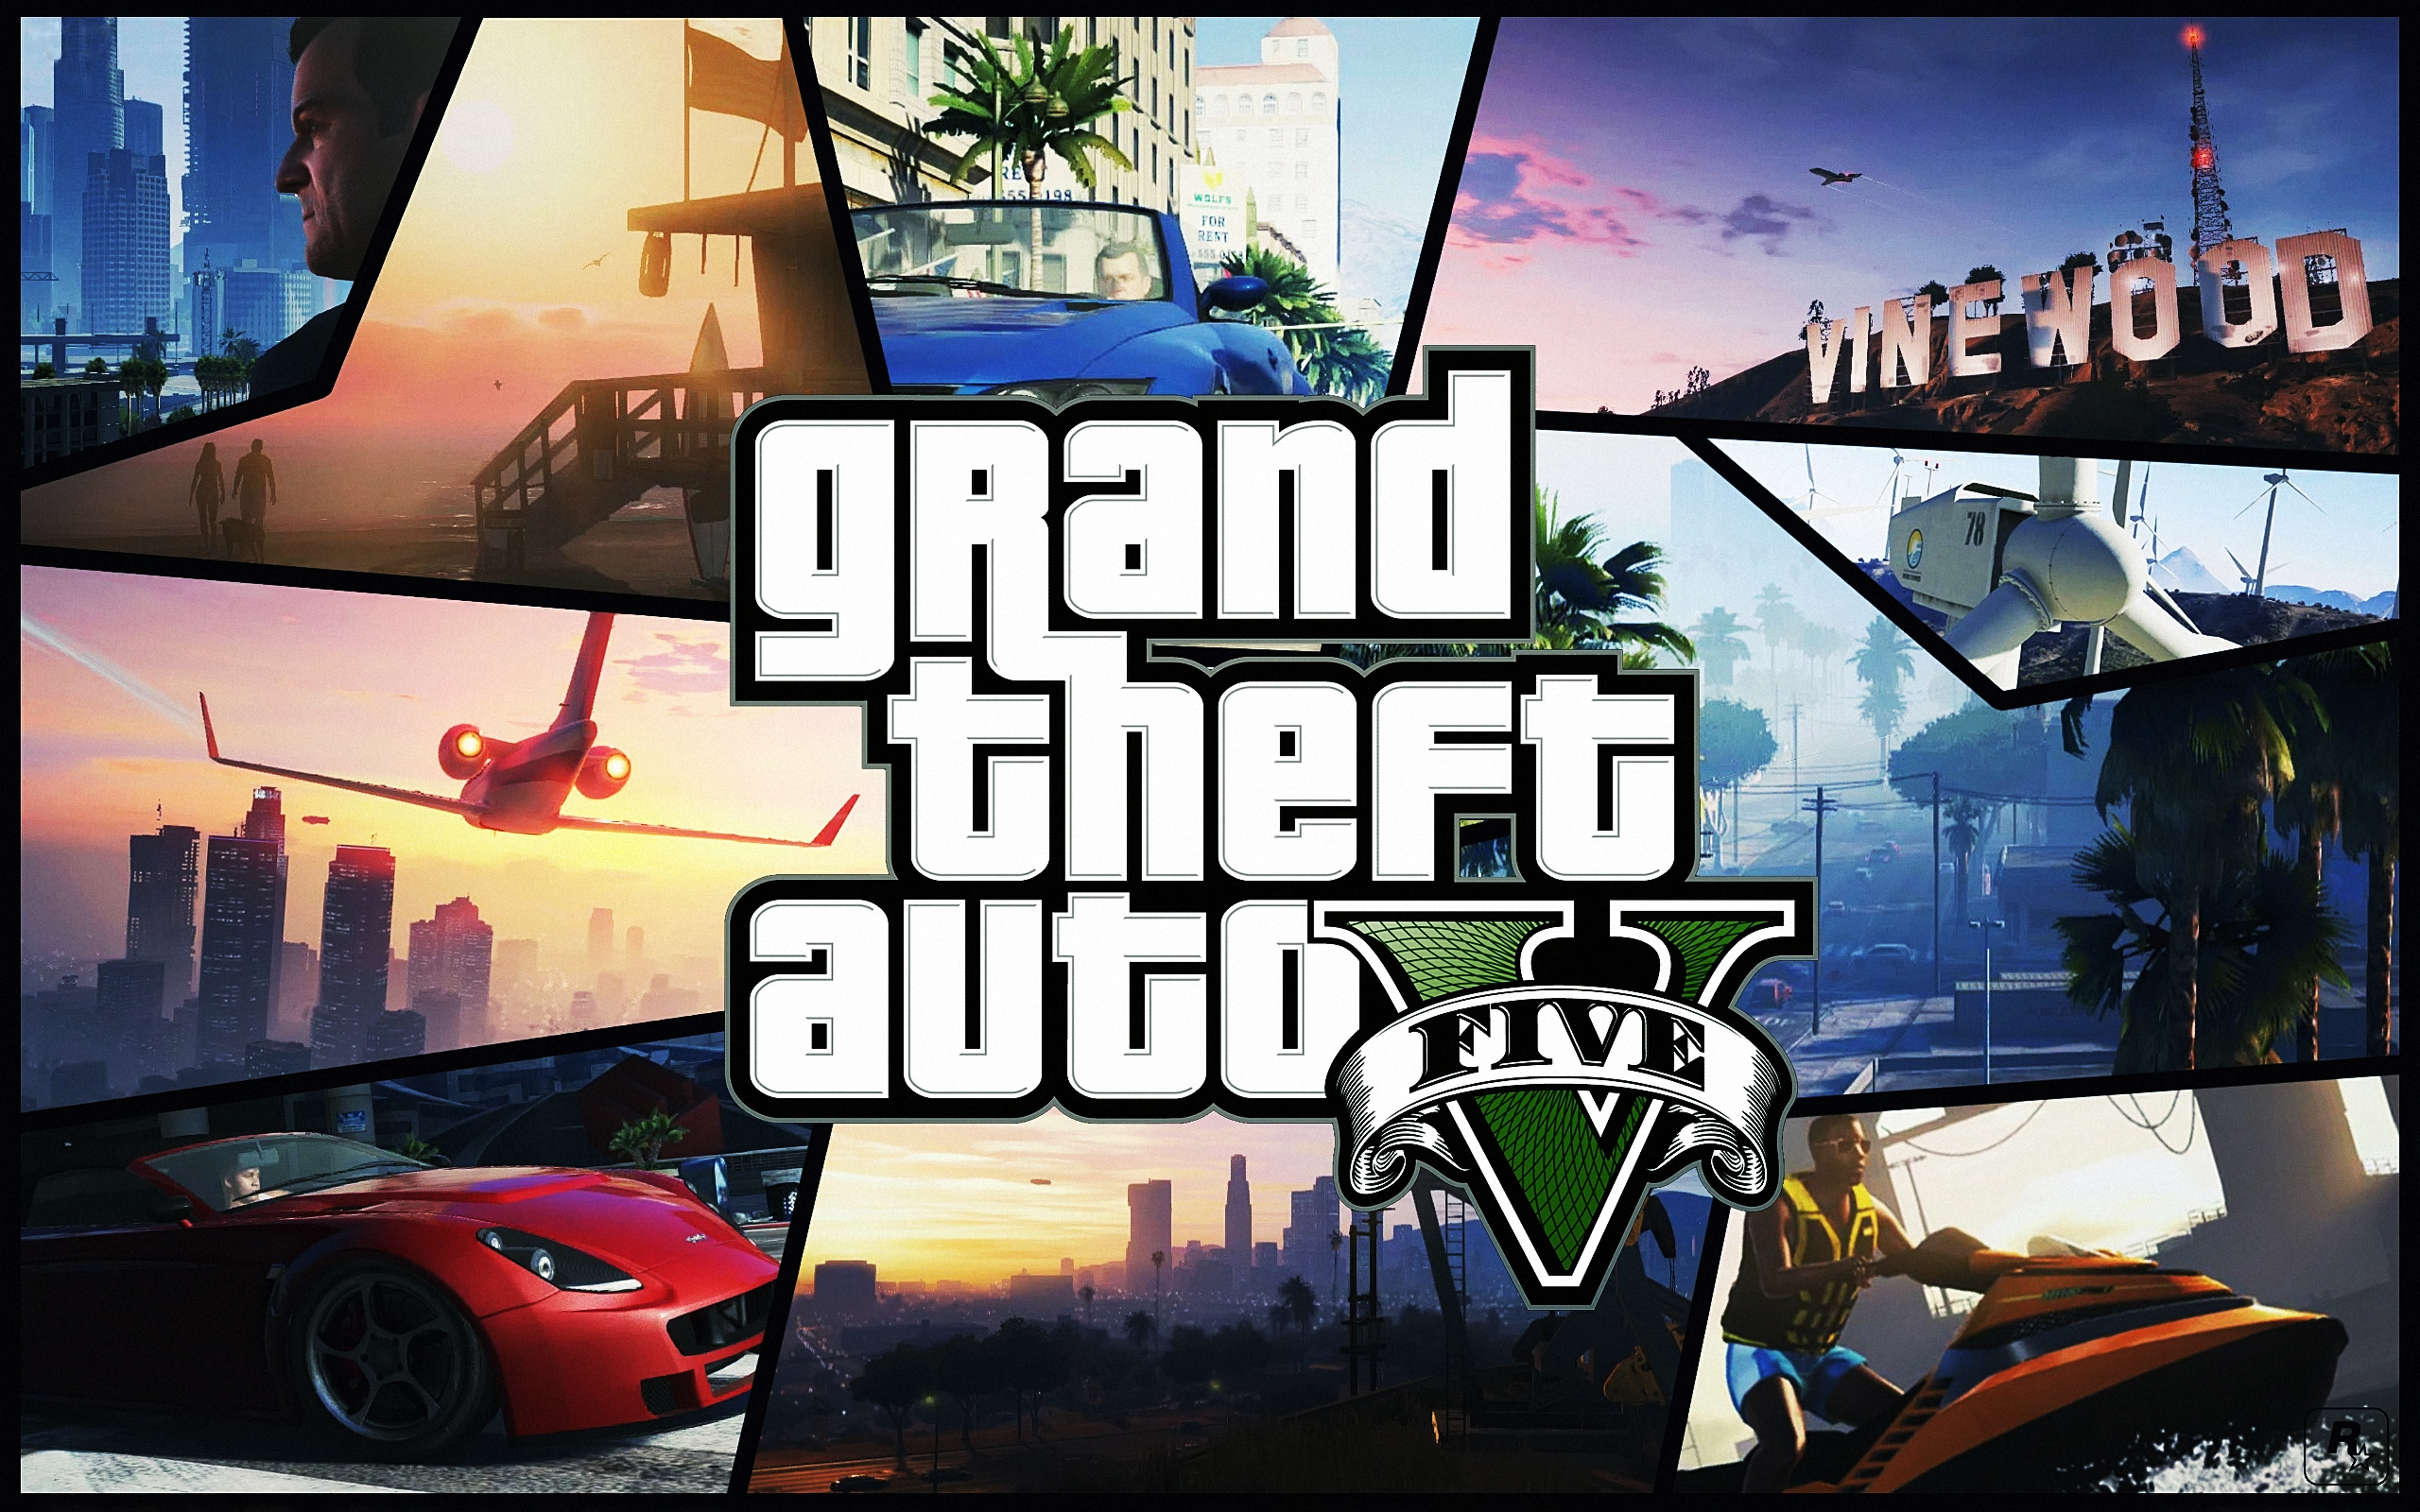 GTA 5: How to download Grand Theft Auto V on PC and Android smartphones from Steam and Epic Games Store